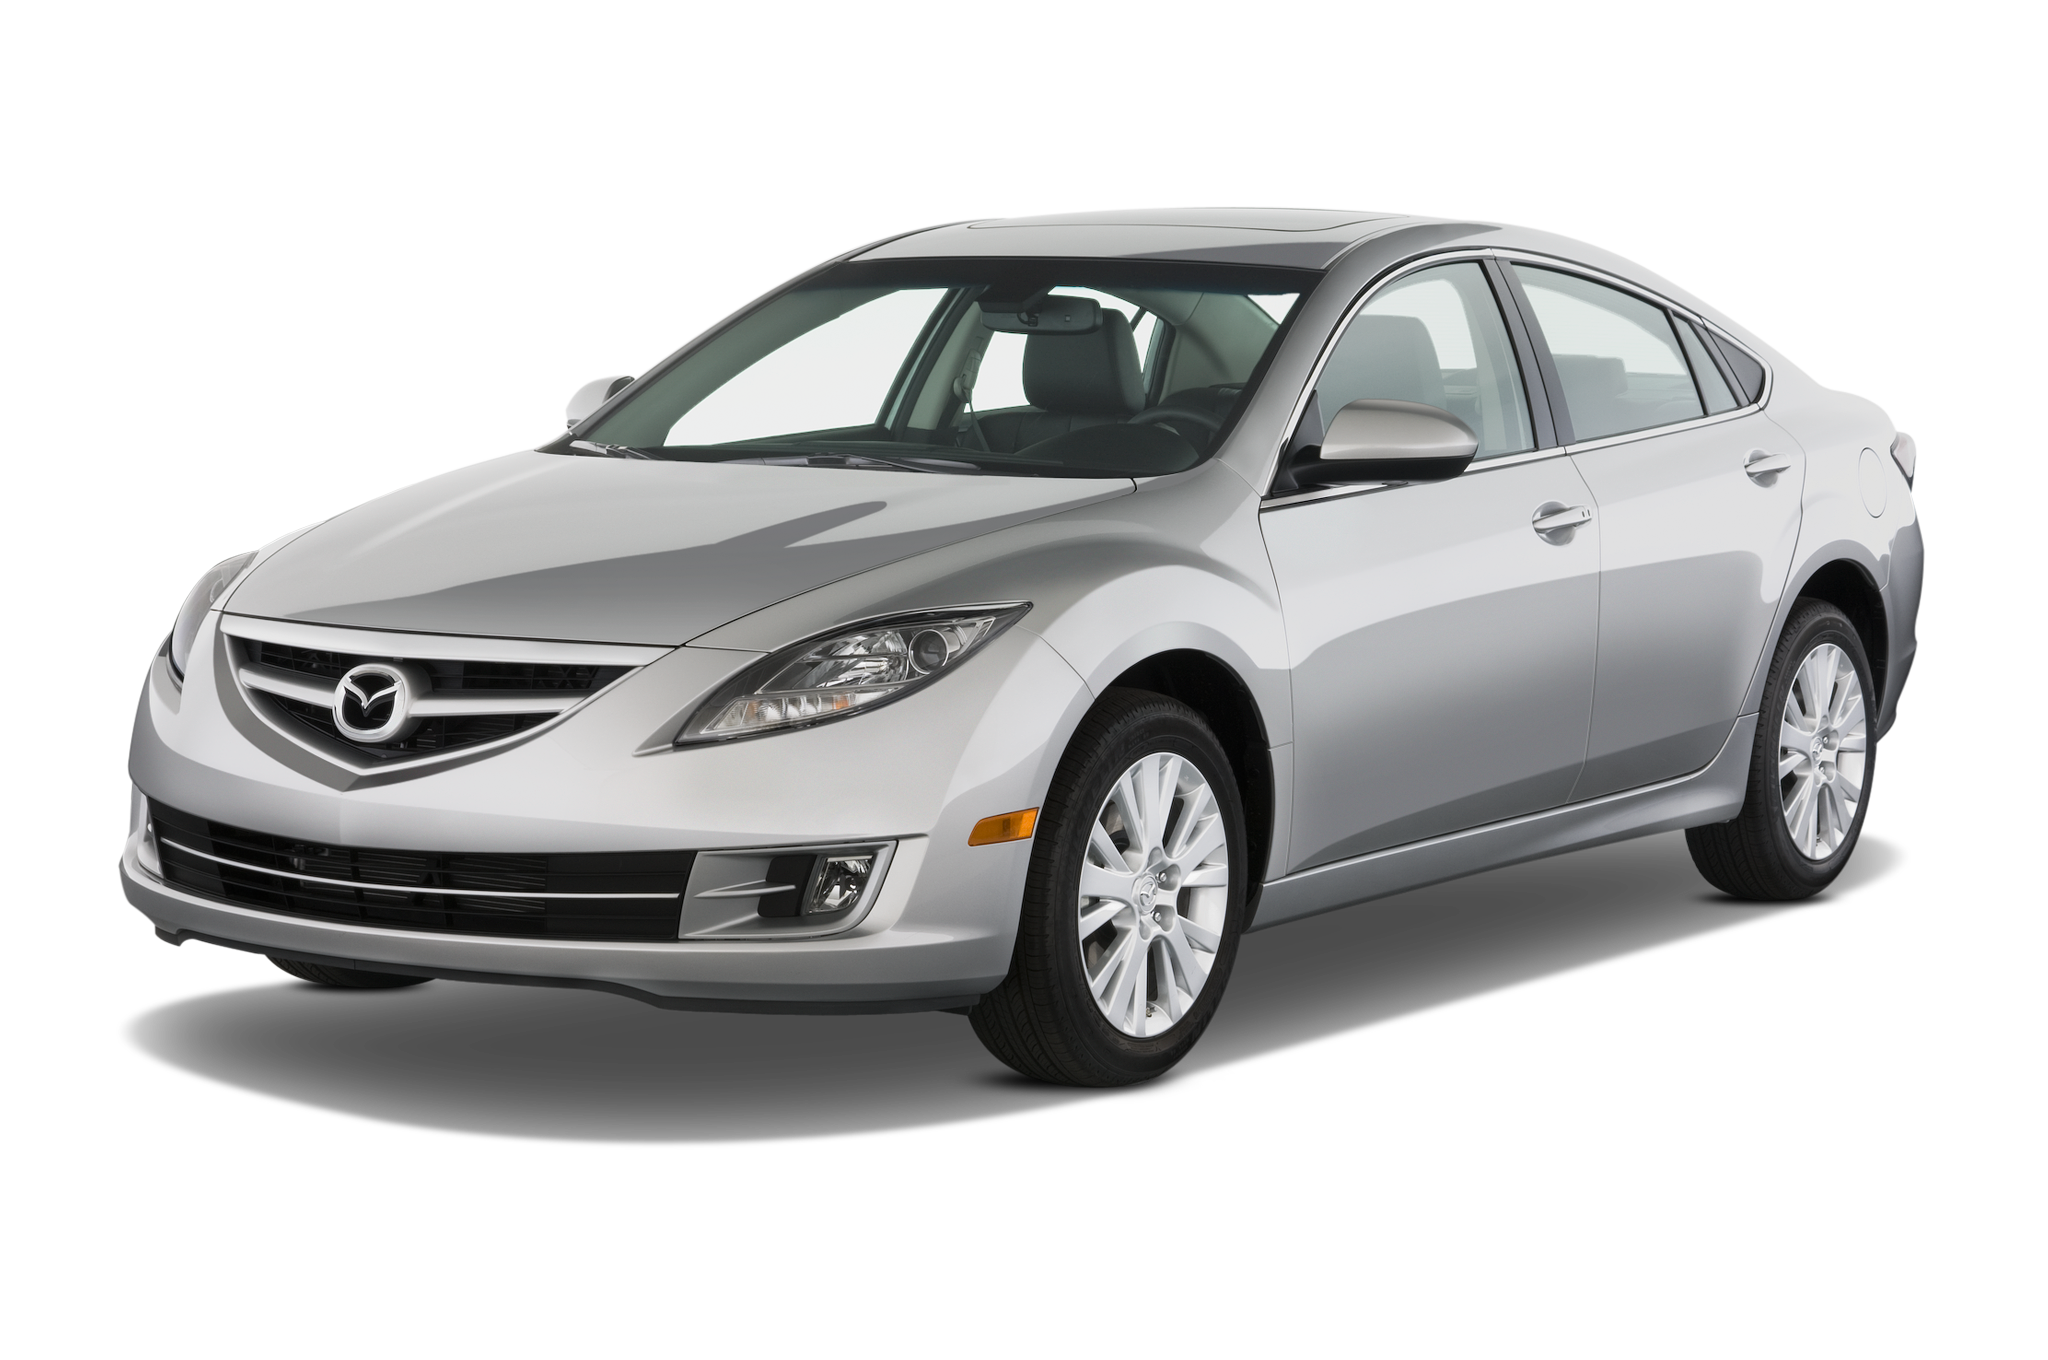 2010 mazda 6 grand touring editor 39 s notebook. Black Bedroom Furniture Sets. Home Design Ideas